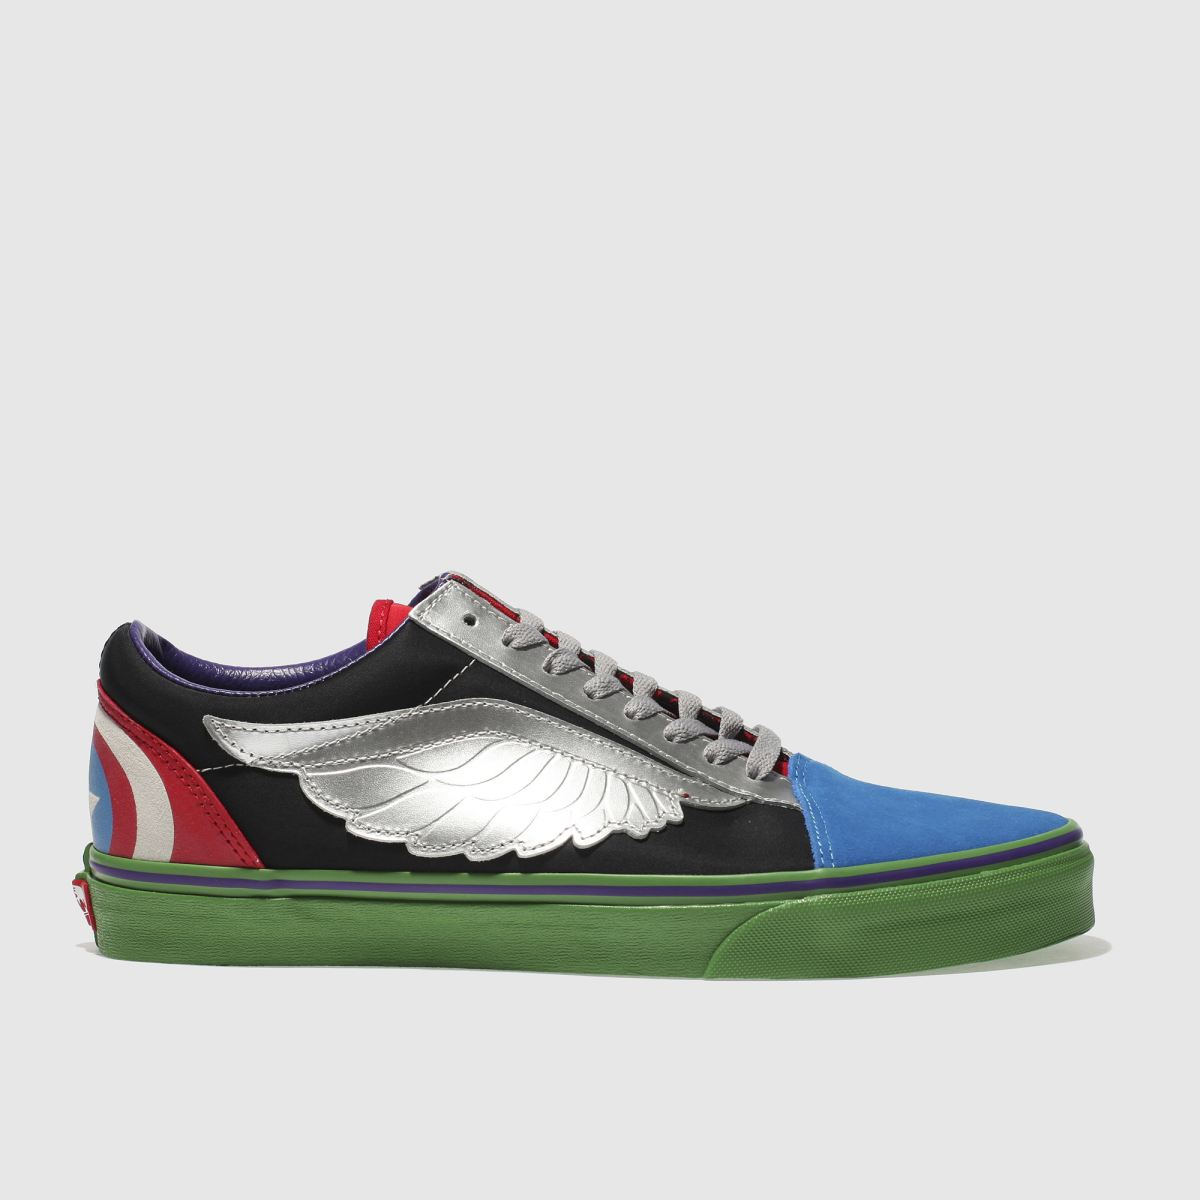 576f1a606a All Footwear - London Trend - The Full Collection at London Trend